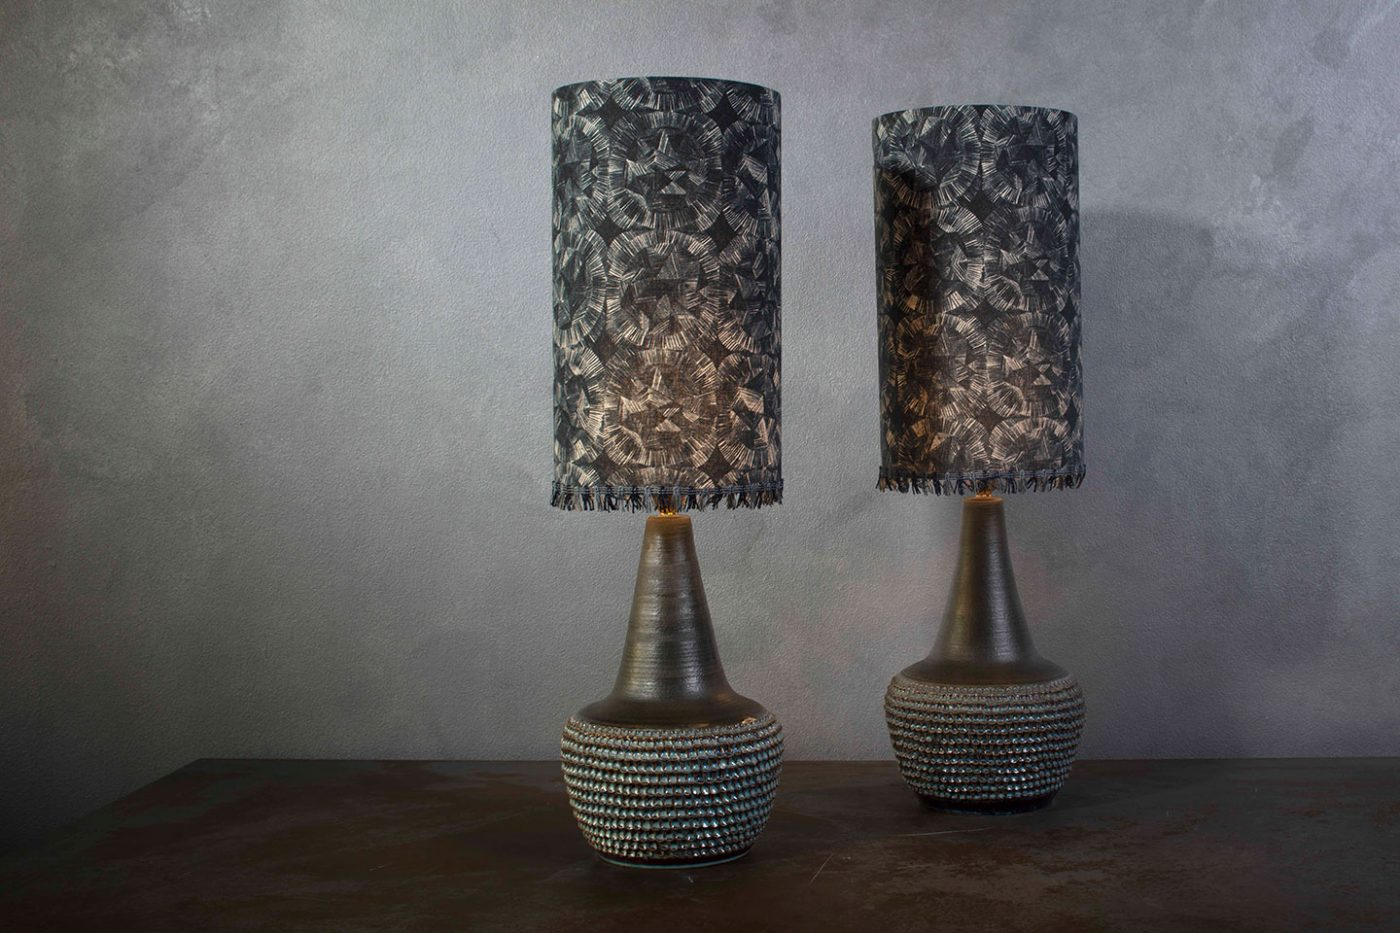 danishtablelamps-on-light-by-harry-clark